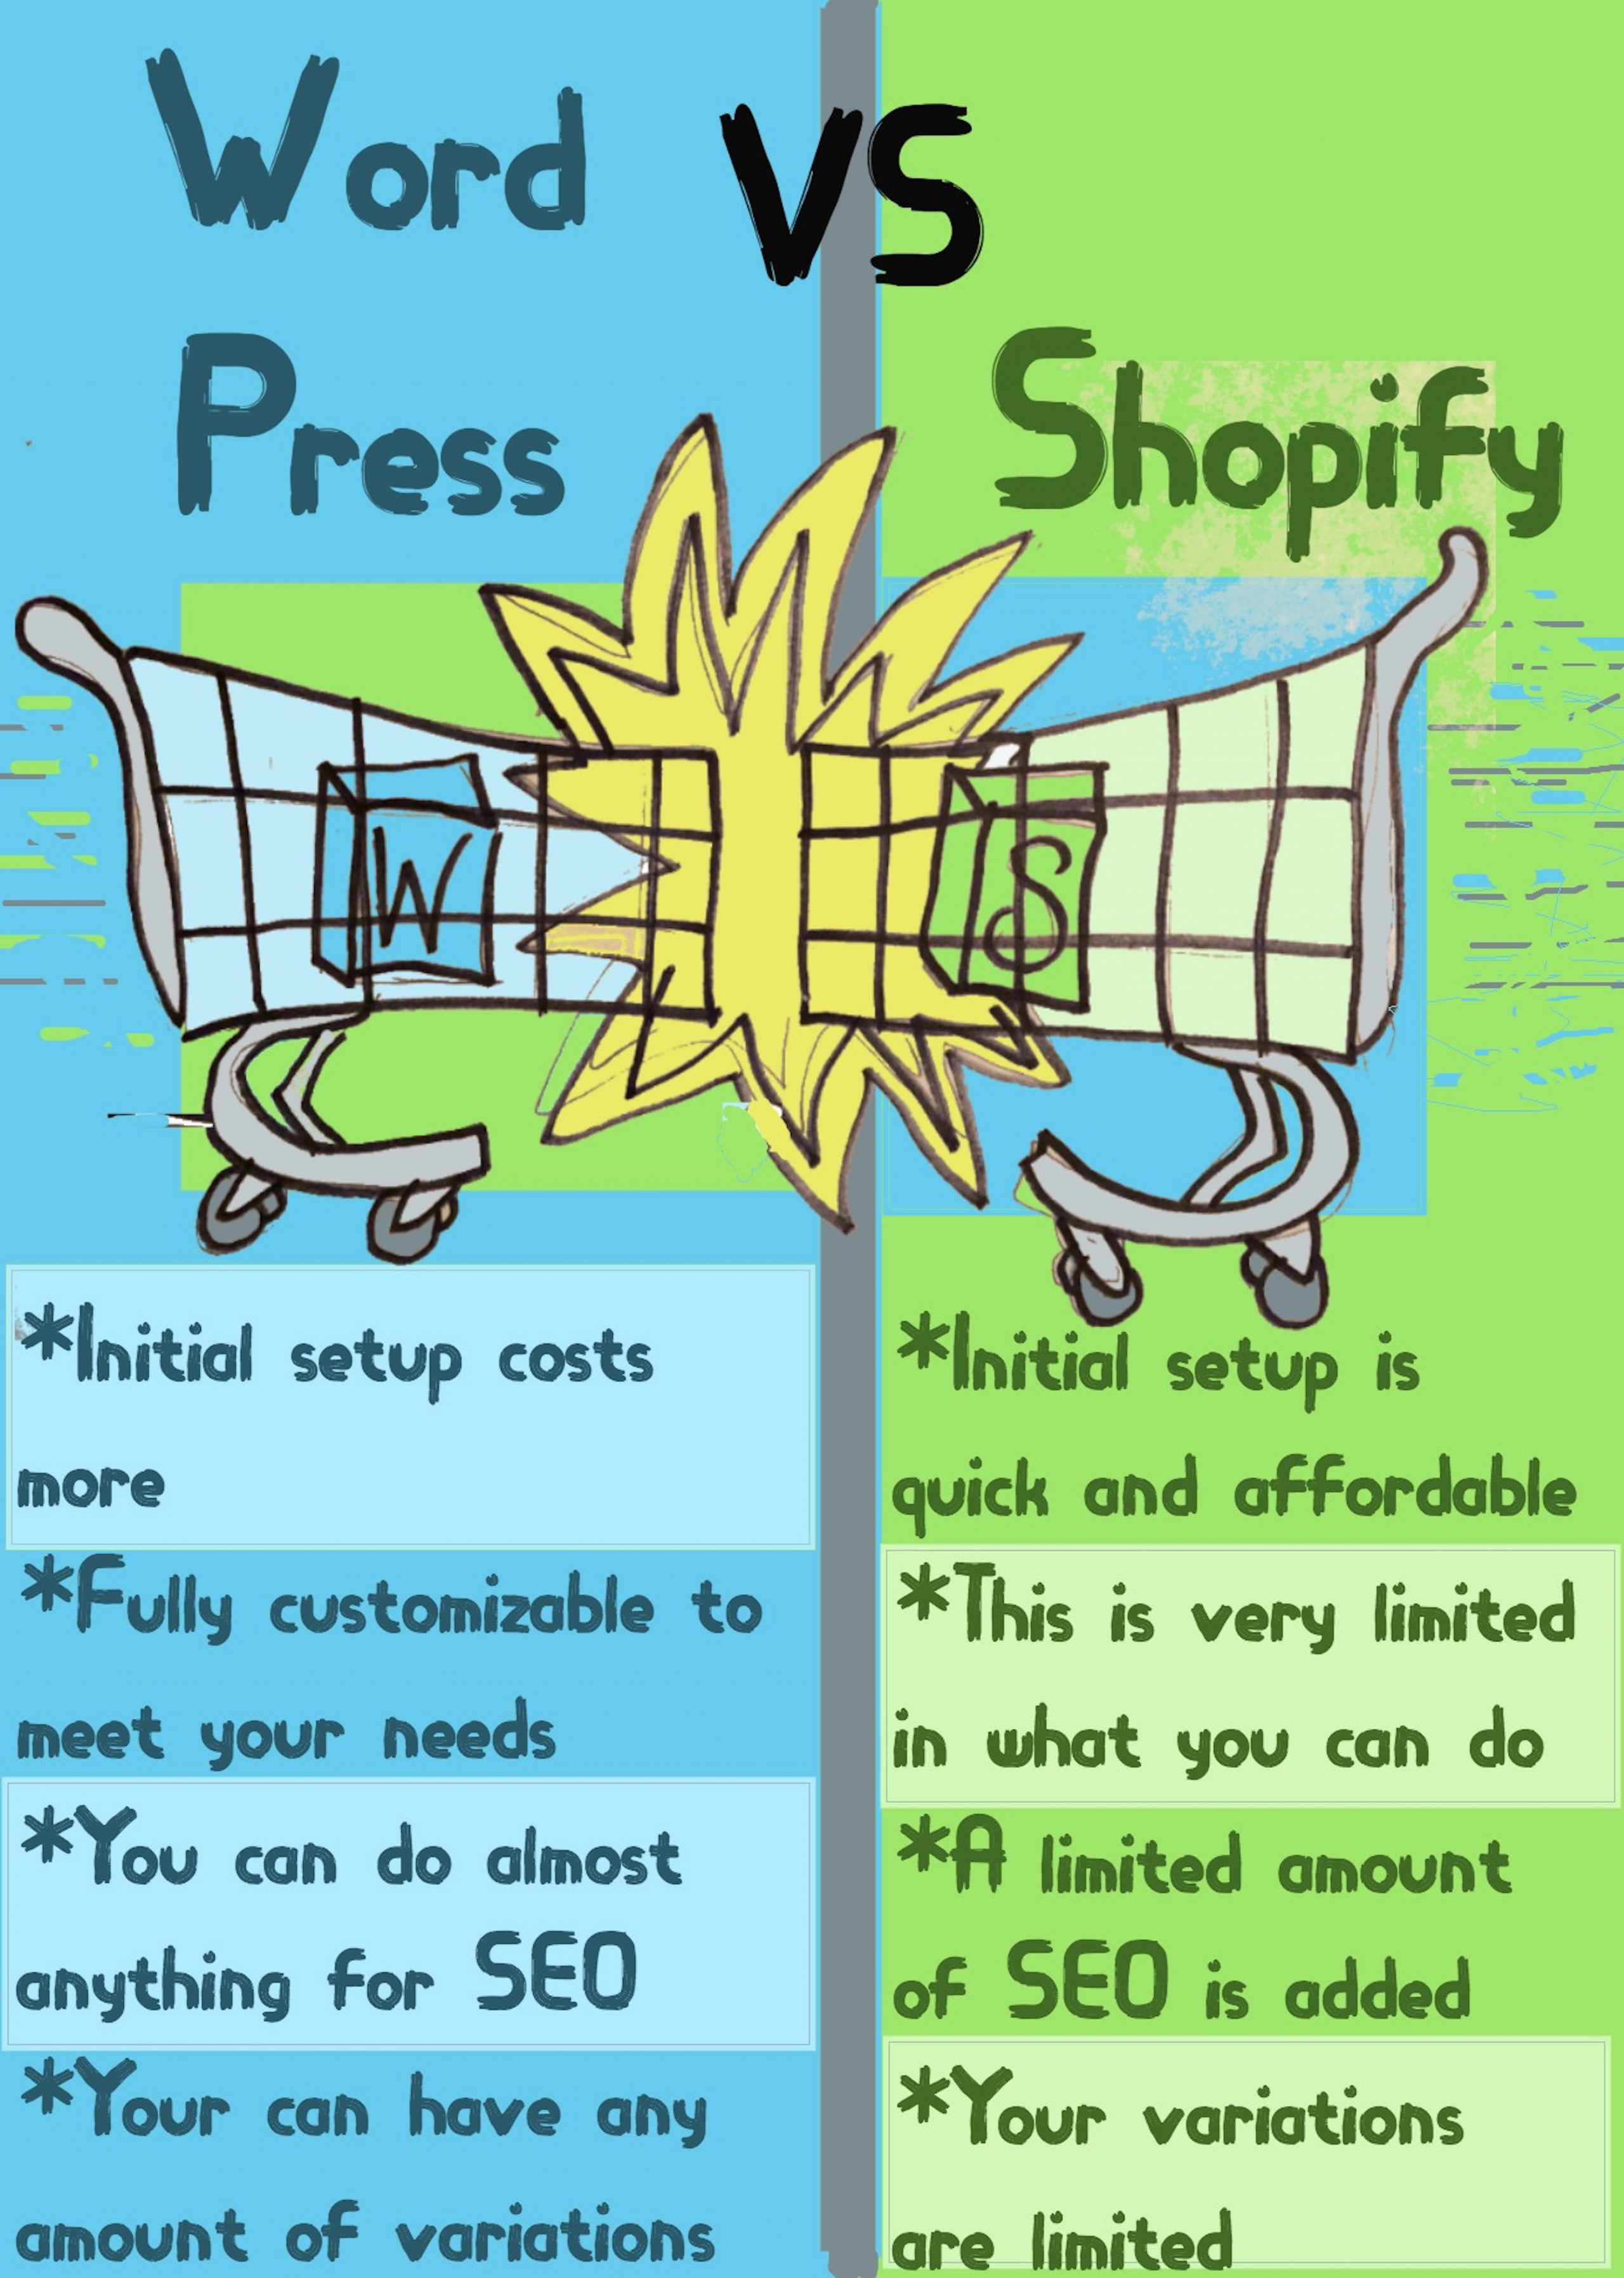 WordPress versus Shopify